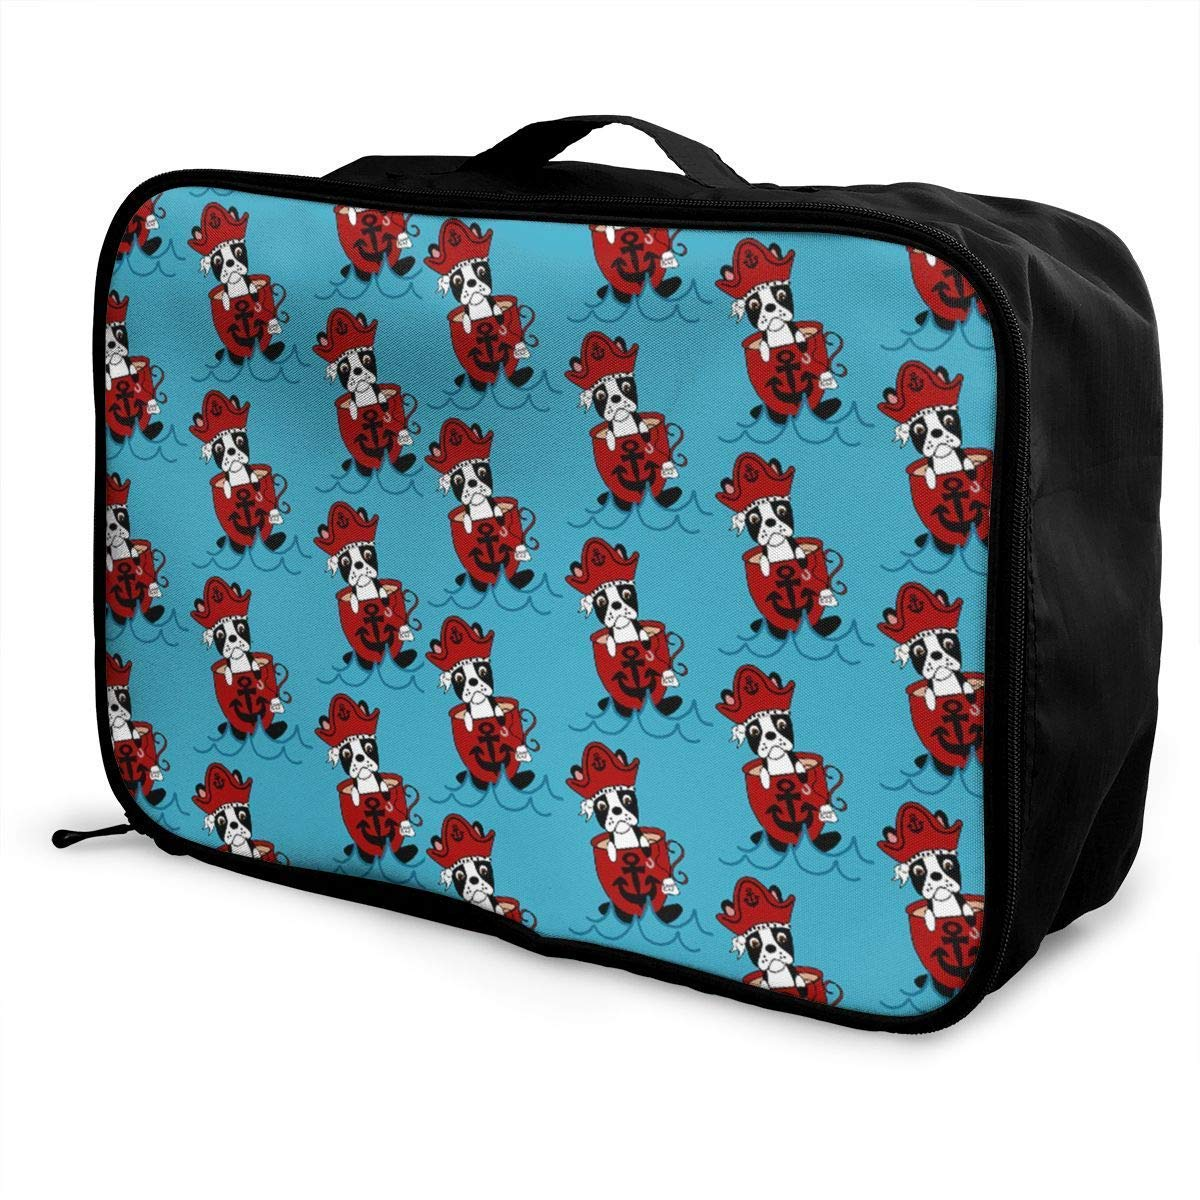 Portable Luggage Duffel Bag Boston Terrier Pirate Travel Bags Carry-on in Trolley Handle JTRVW Luggage Bags for Travel